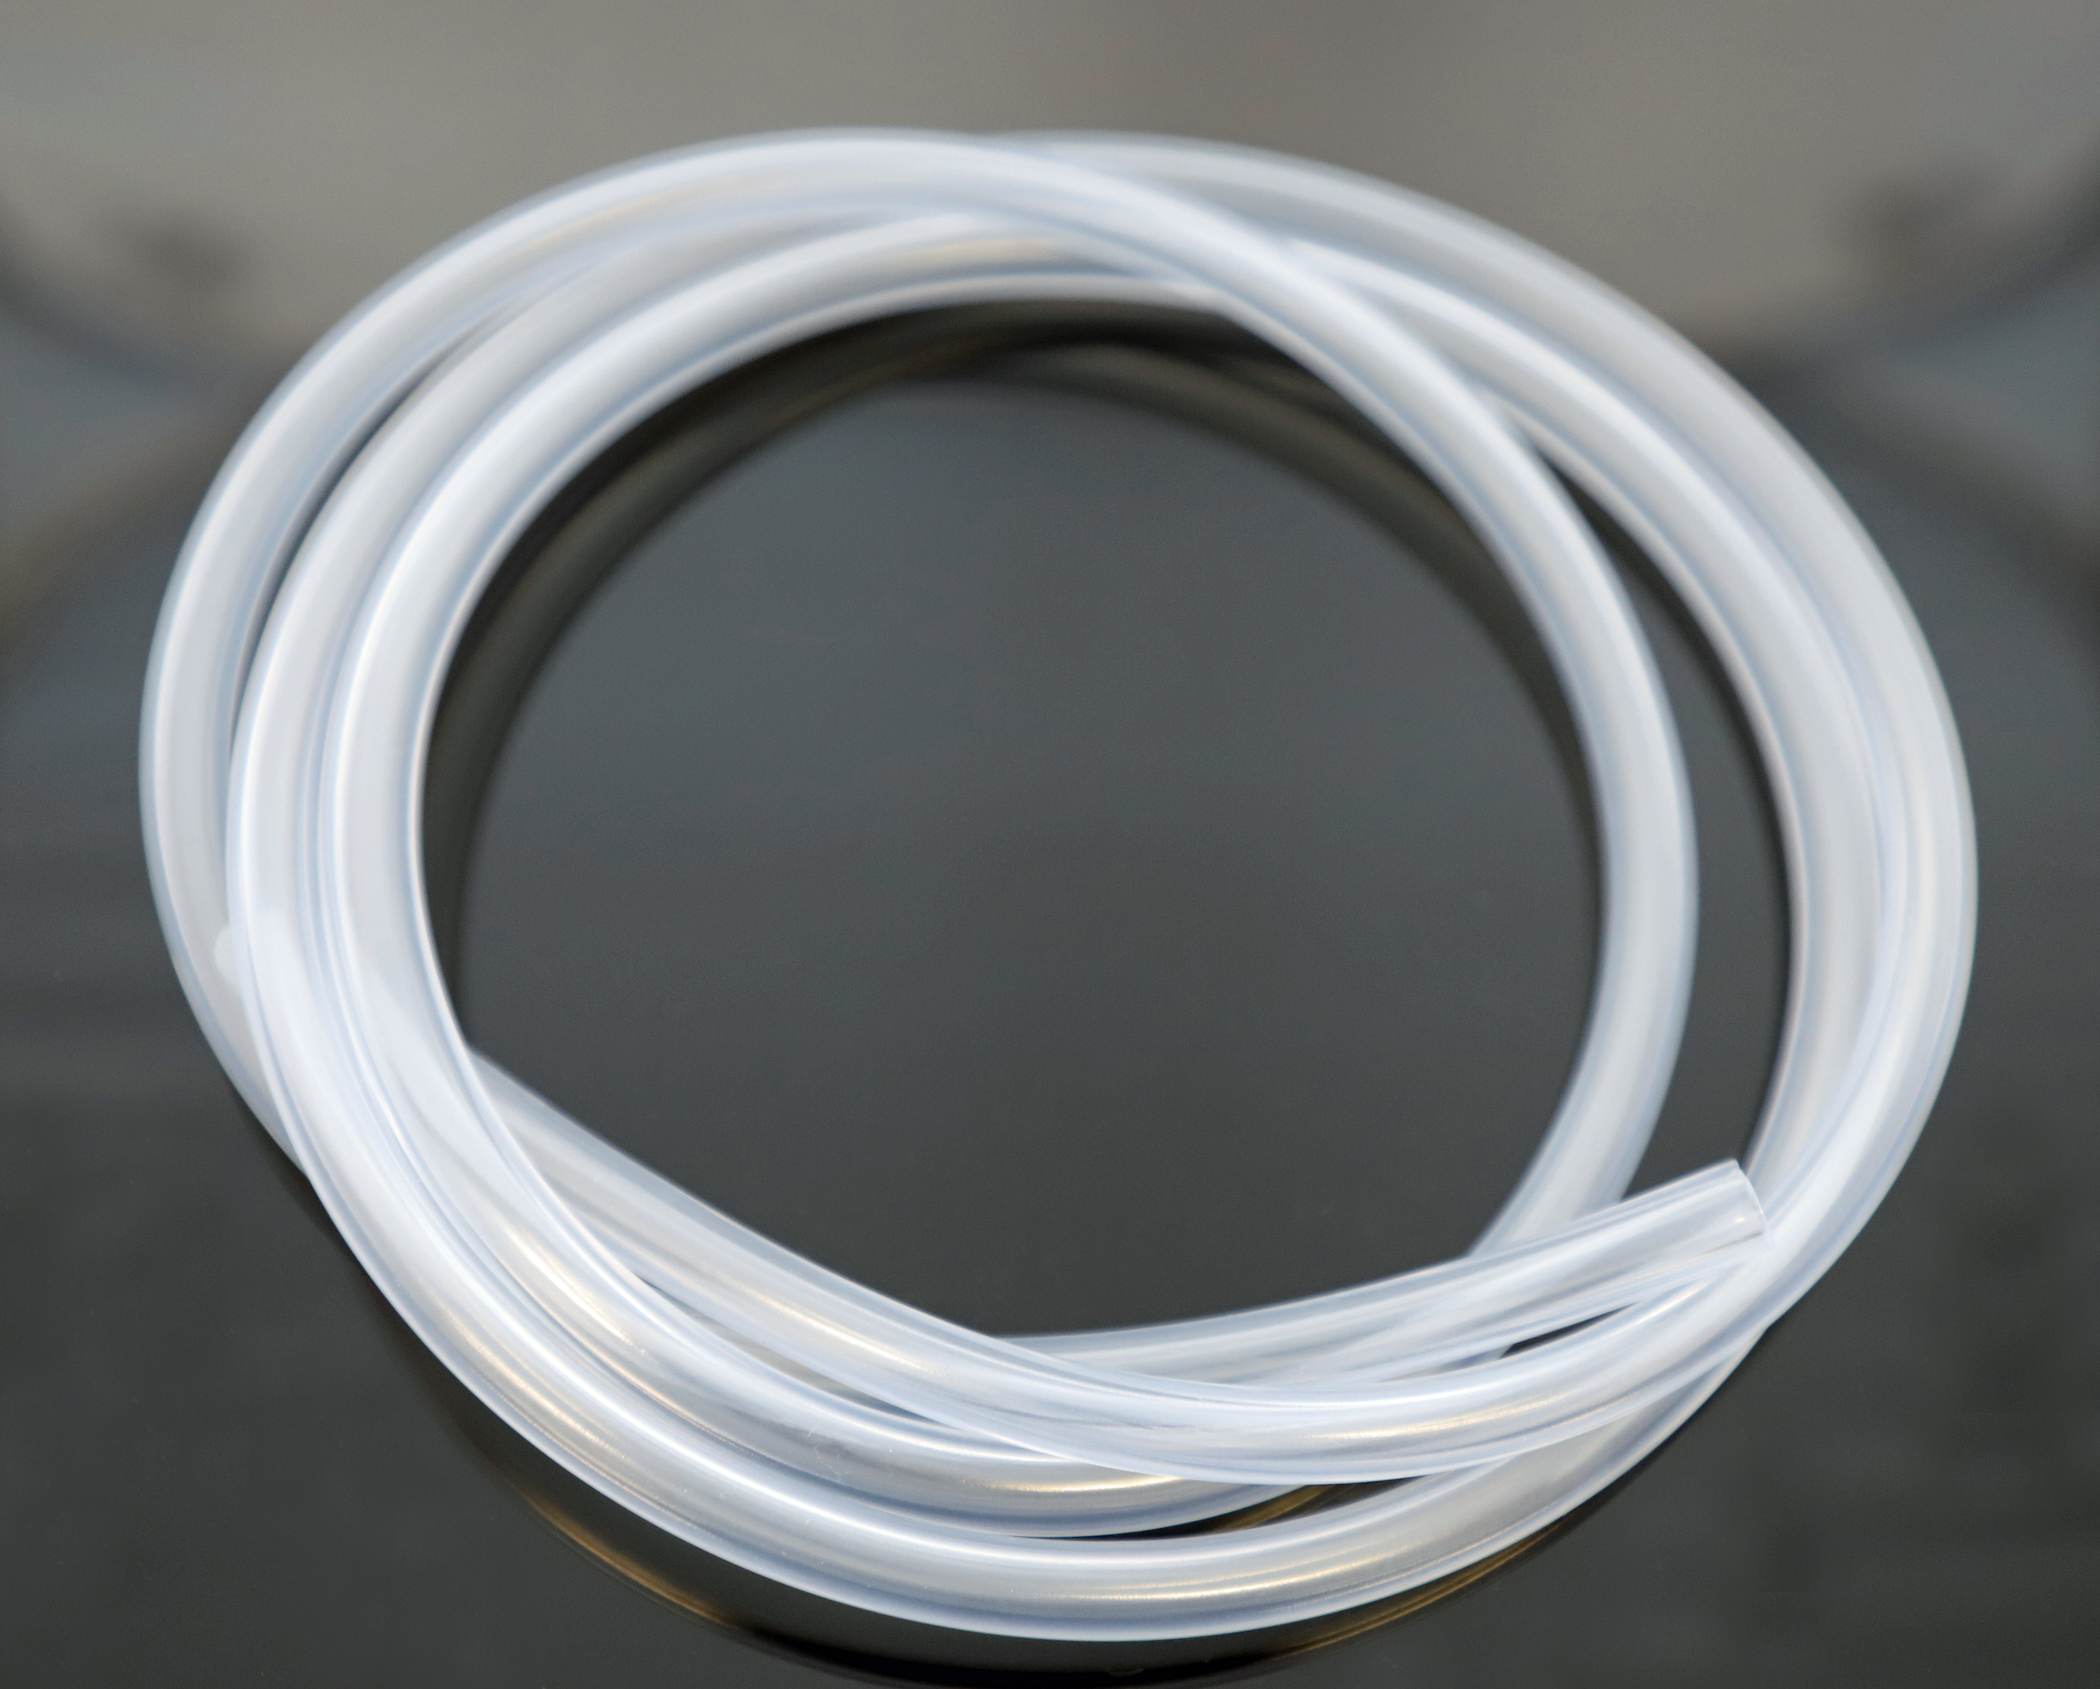 Translucent tubing made from Medalist TPE (Source: Teknor Apex)